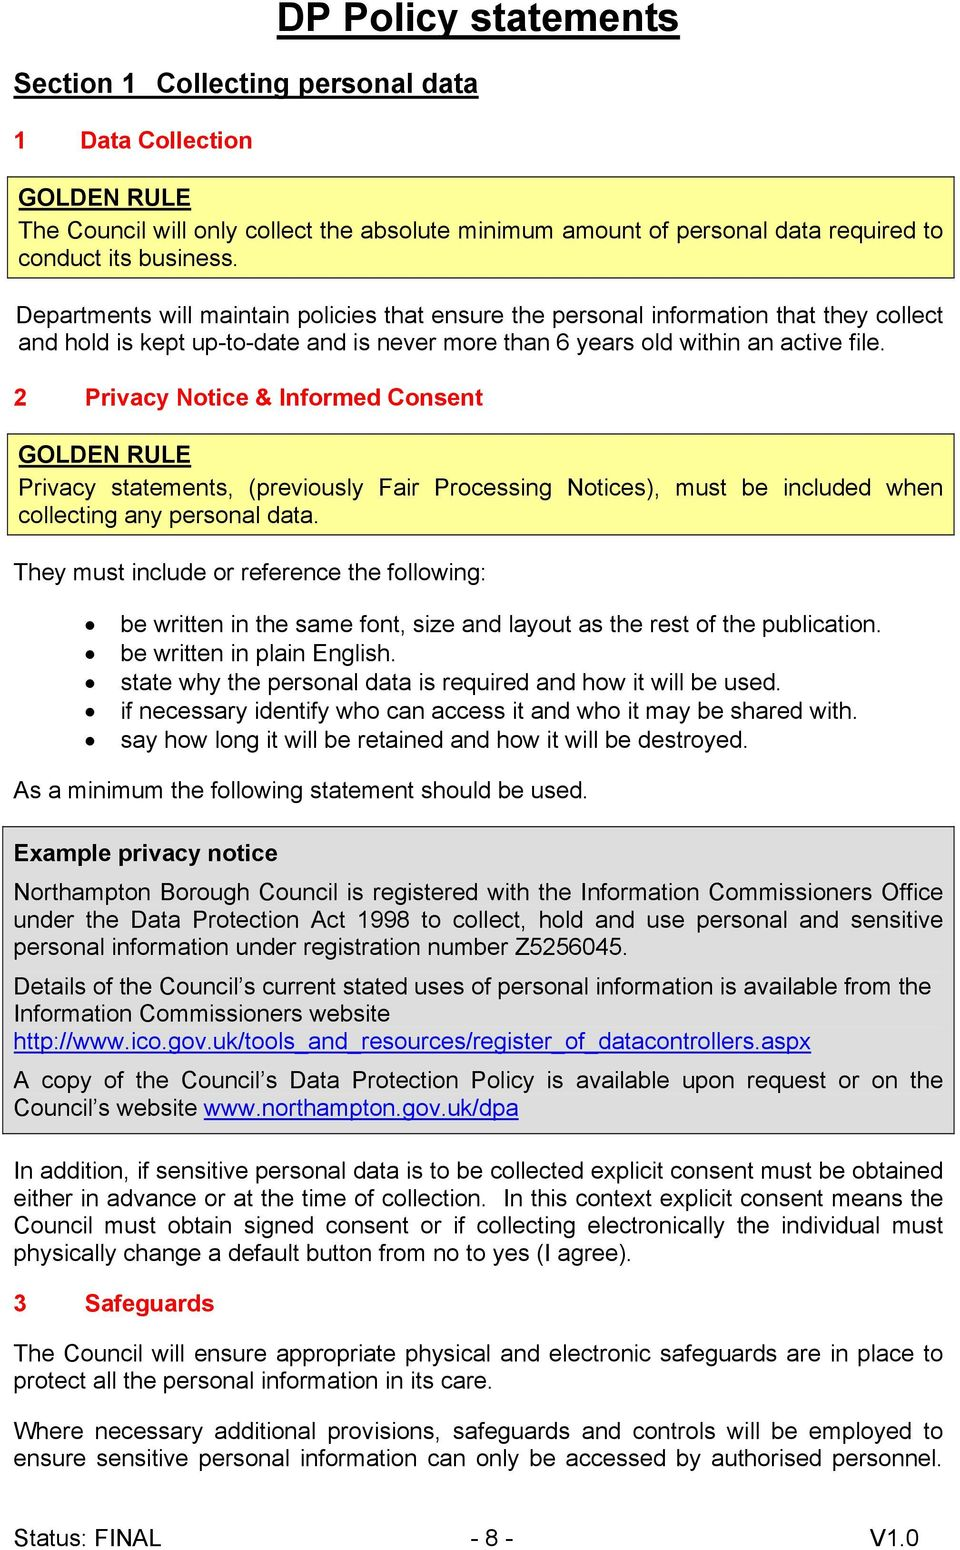 2 Privacy Notice & Informed Consent GOLDEN RULE Privacy statements, (previously Fair Processing Notices), must be included when collecting any personal data.